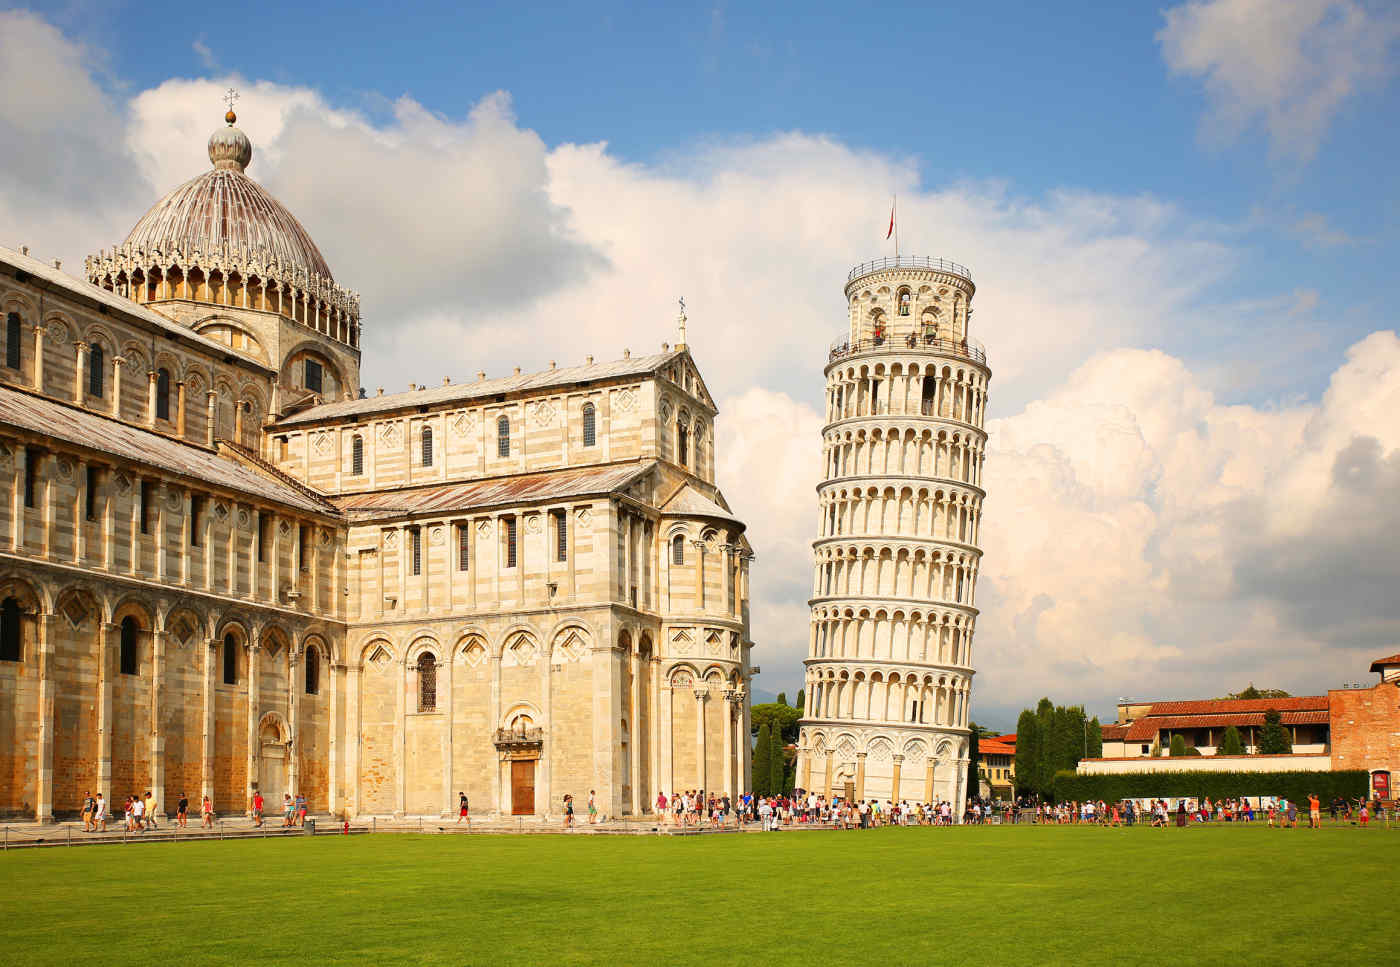 Leaning Tower of Pisa in Pisa